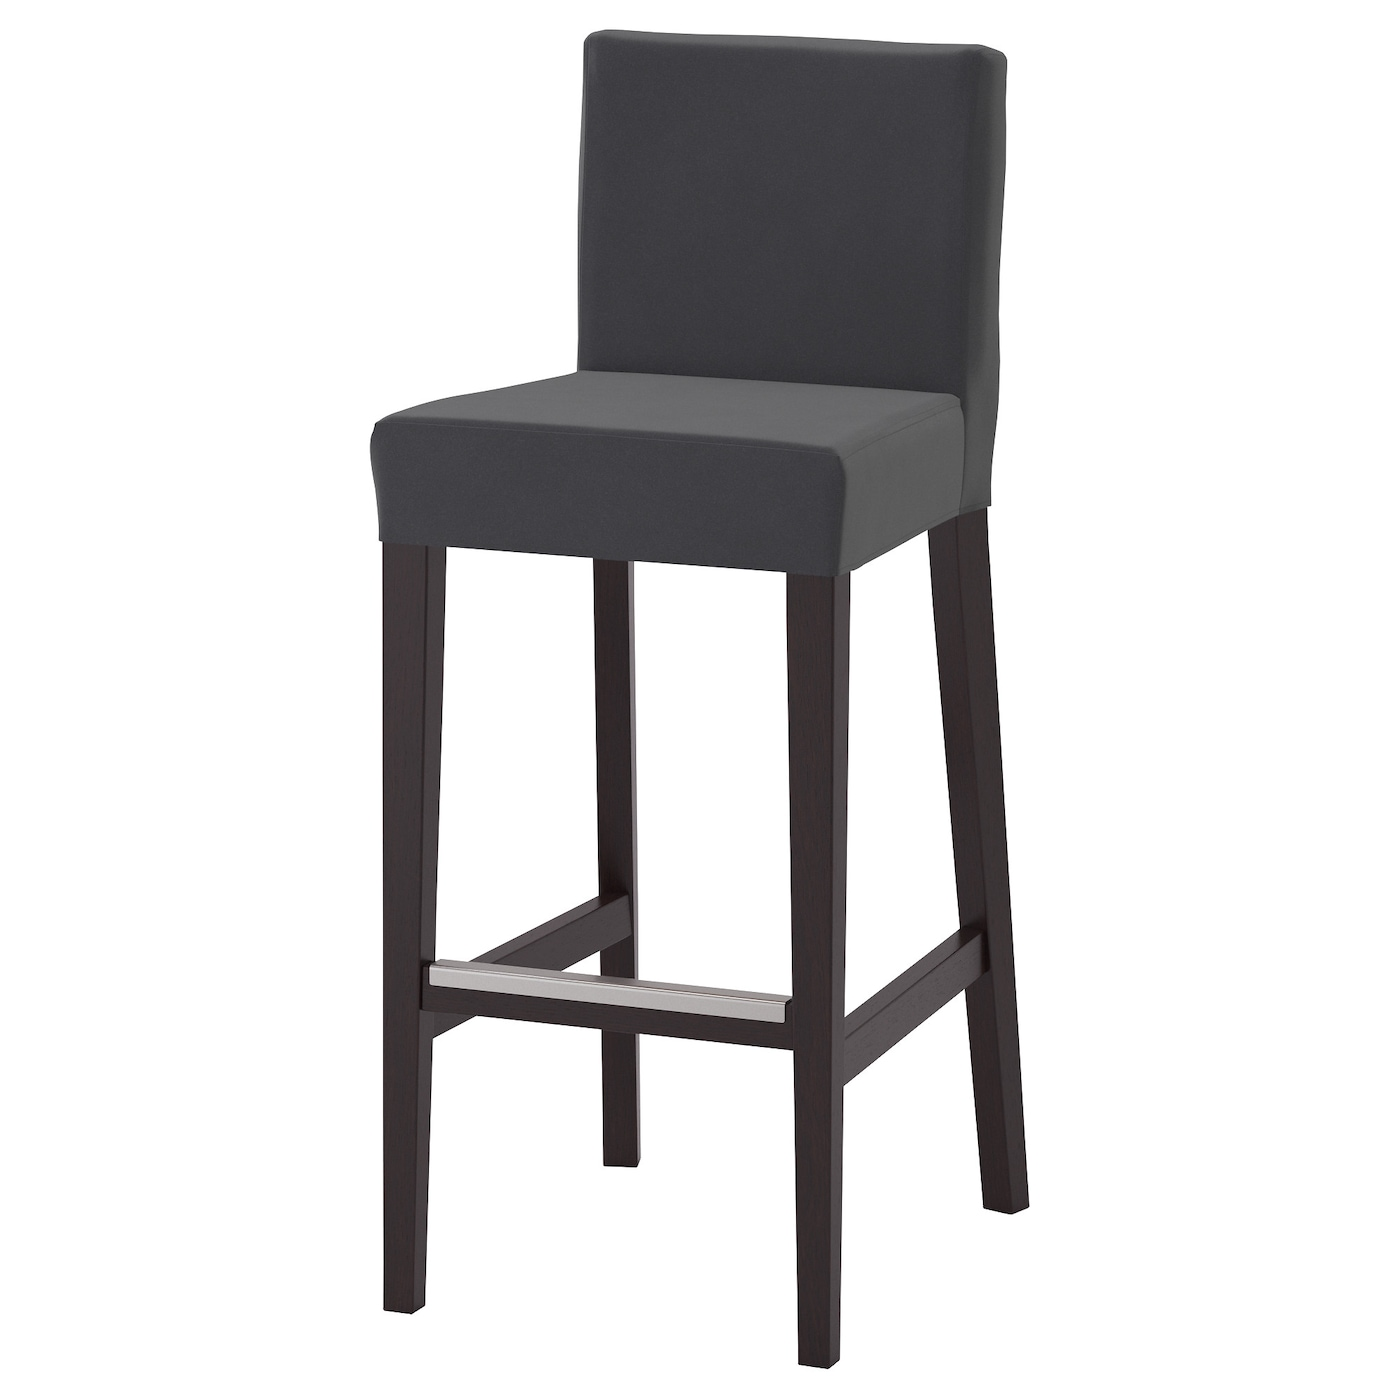 henriksdal tabouret de bar dossier brun noir djuparp gris fonc 74 cm ikea. Black Bedroom Furniture Sets. Home Design Ideas